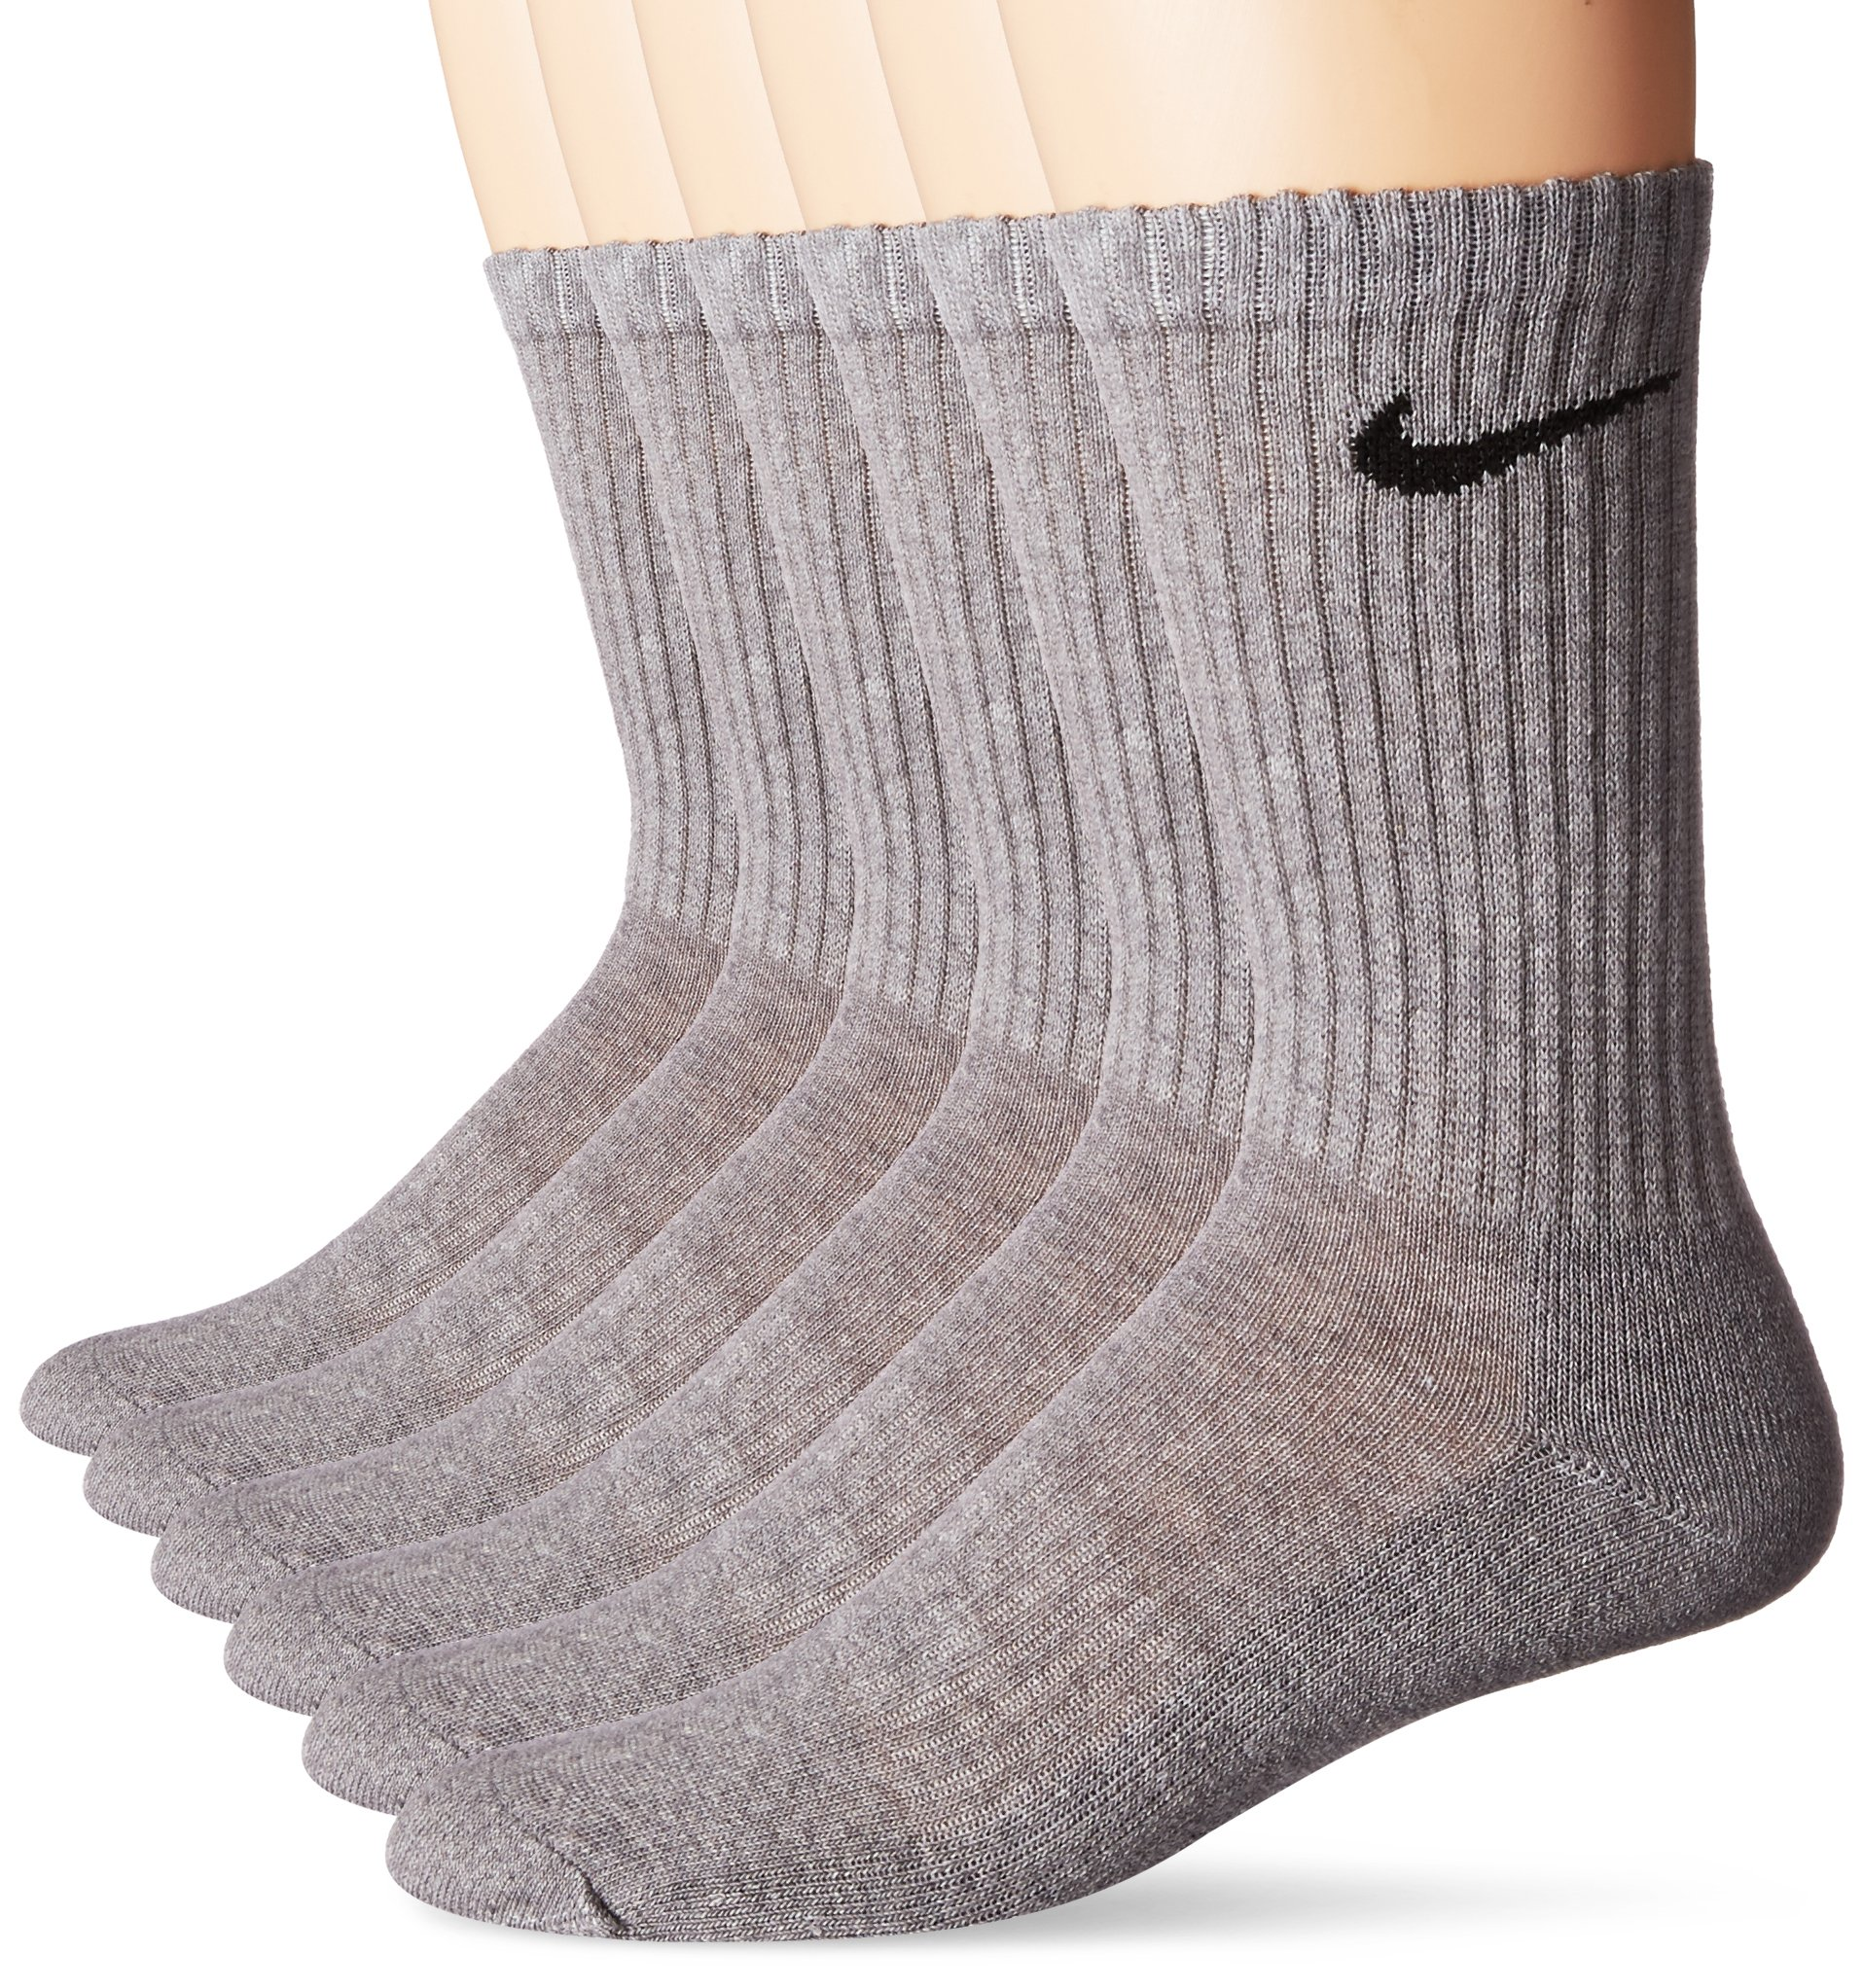 NIKE Unisex Performance Cushion Crew Socks with Bag (6 Pairs), Dark Grey Heather/Black, Medium by Nike